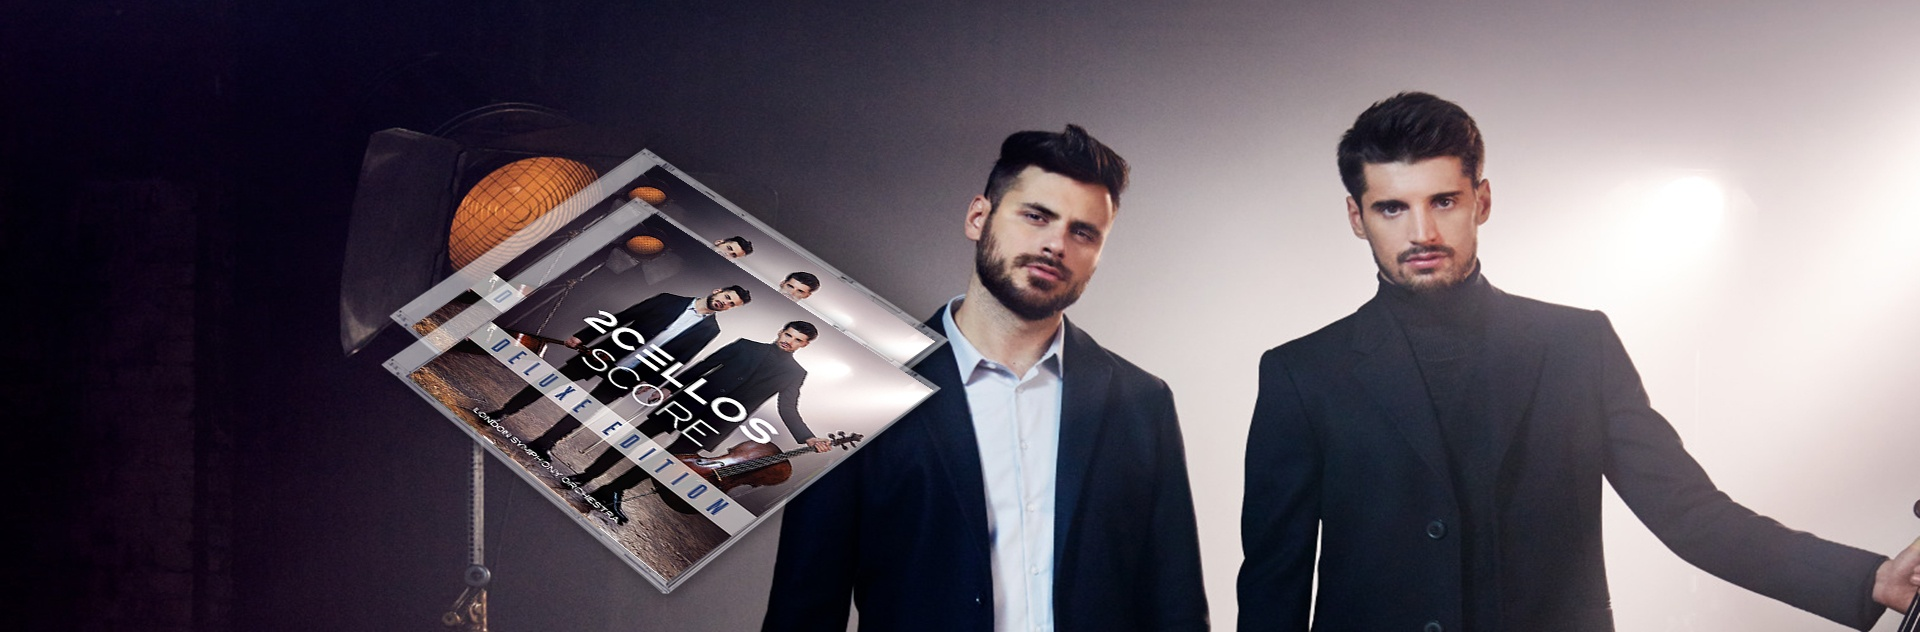 "2CELLOS ""Score"" Deluxe Edition"